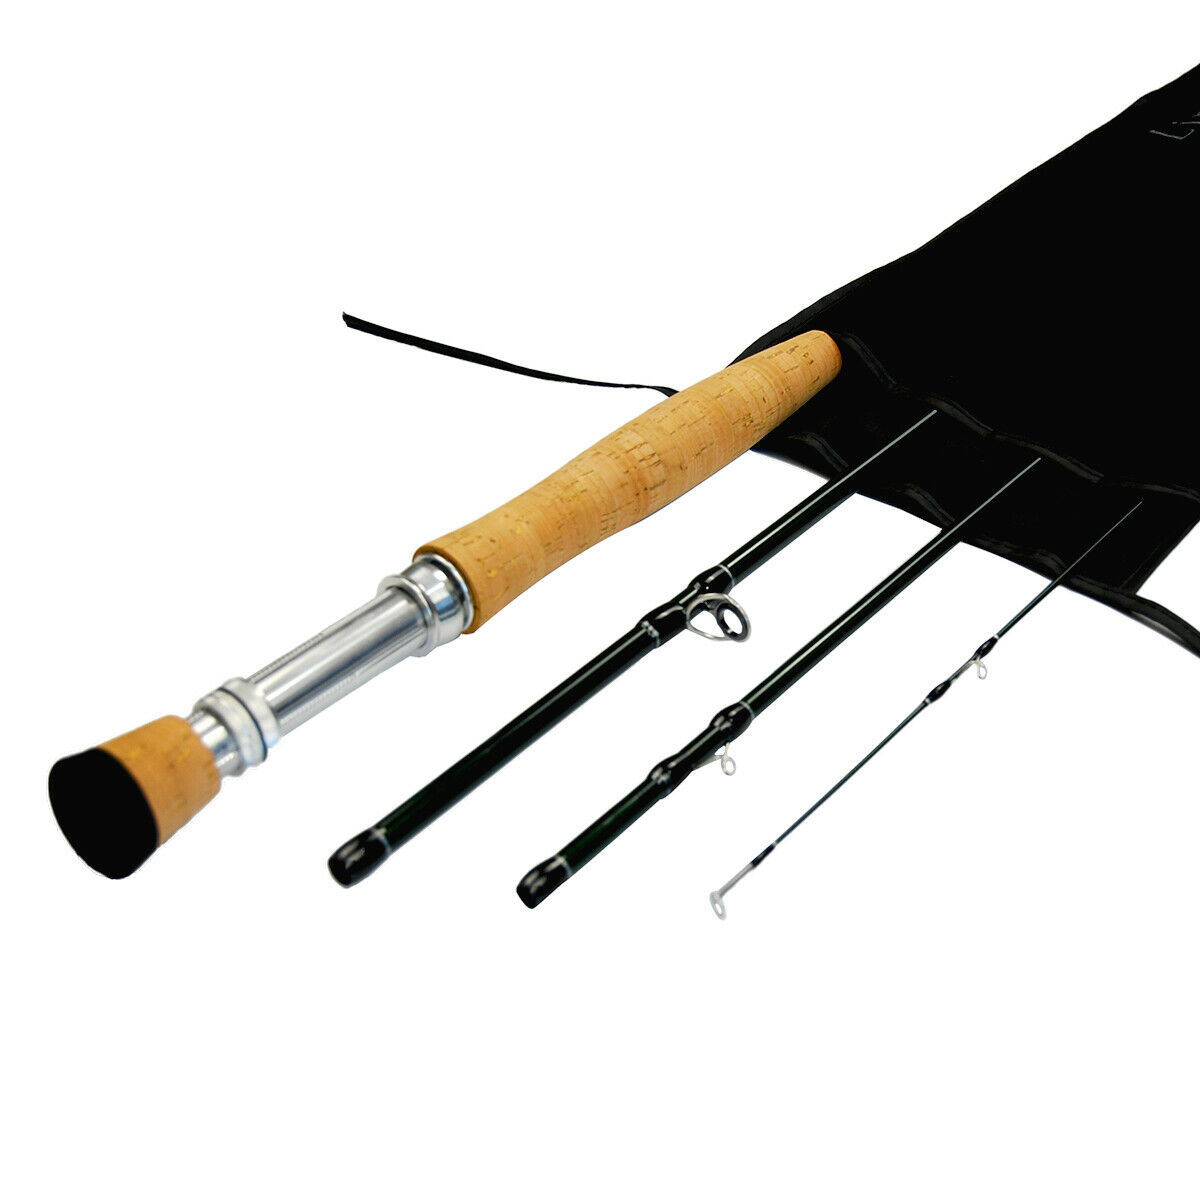 IM8 High Modulus carbon blank Black River Fly Rod New 9ft 4pc 5wt,2tips